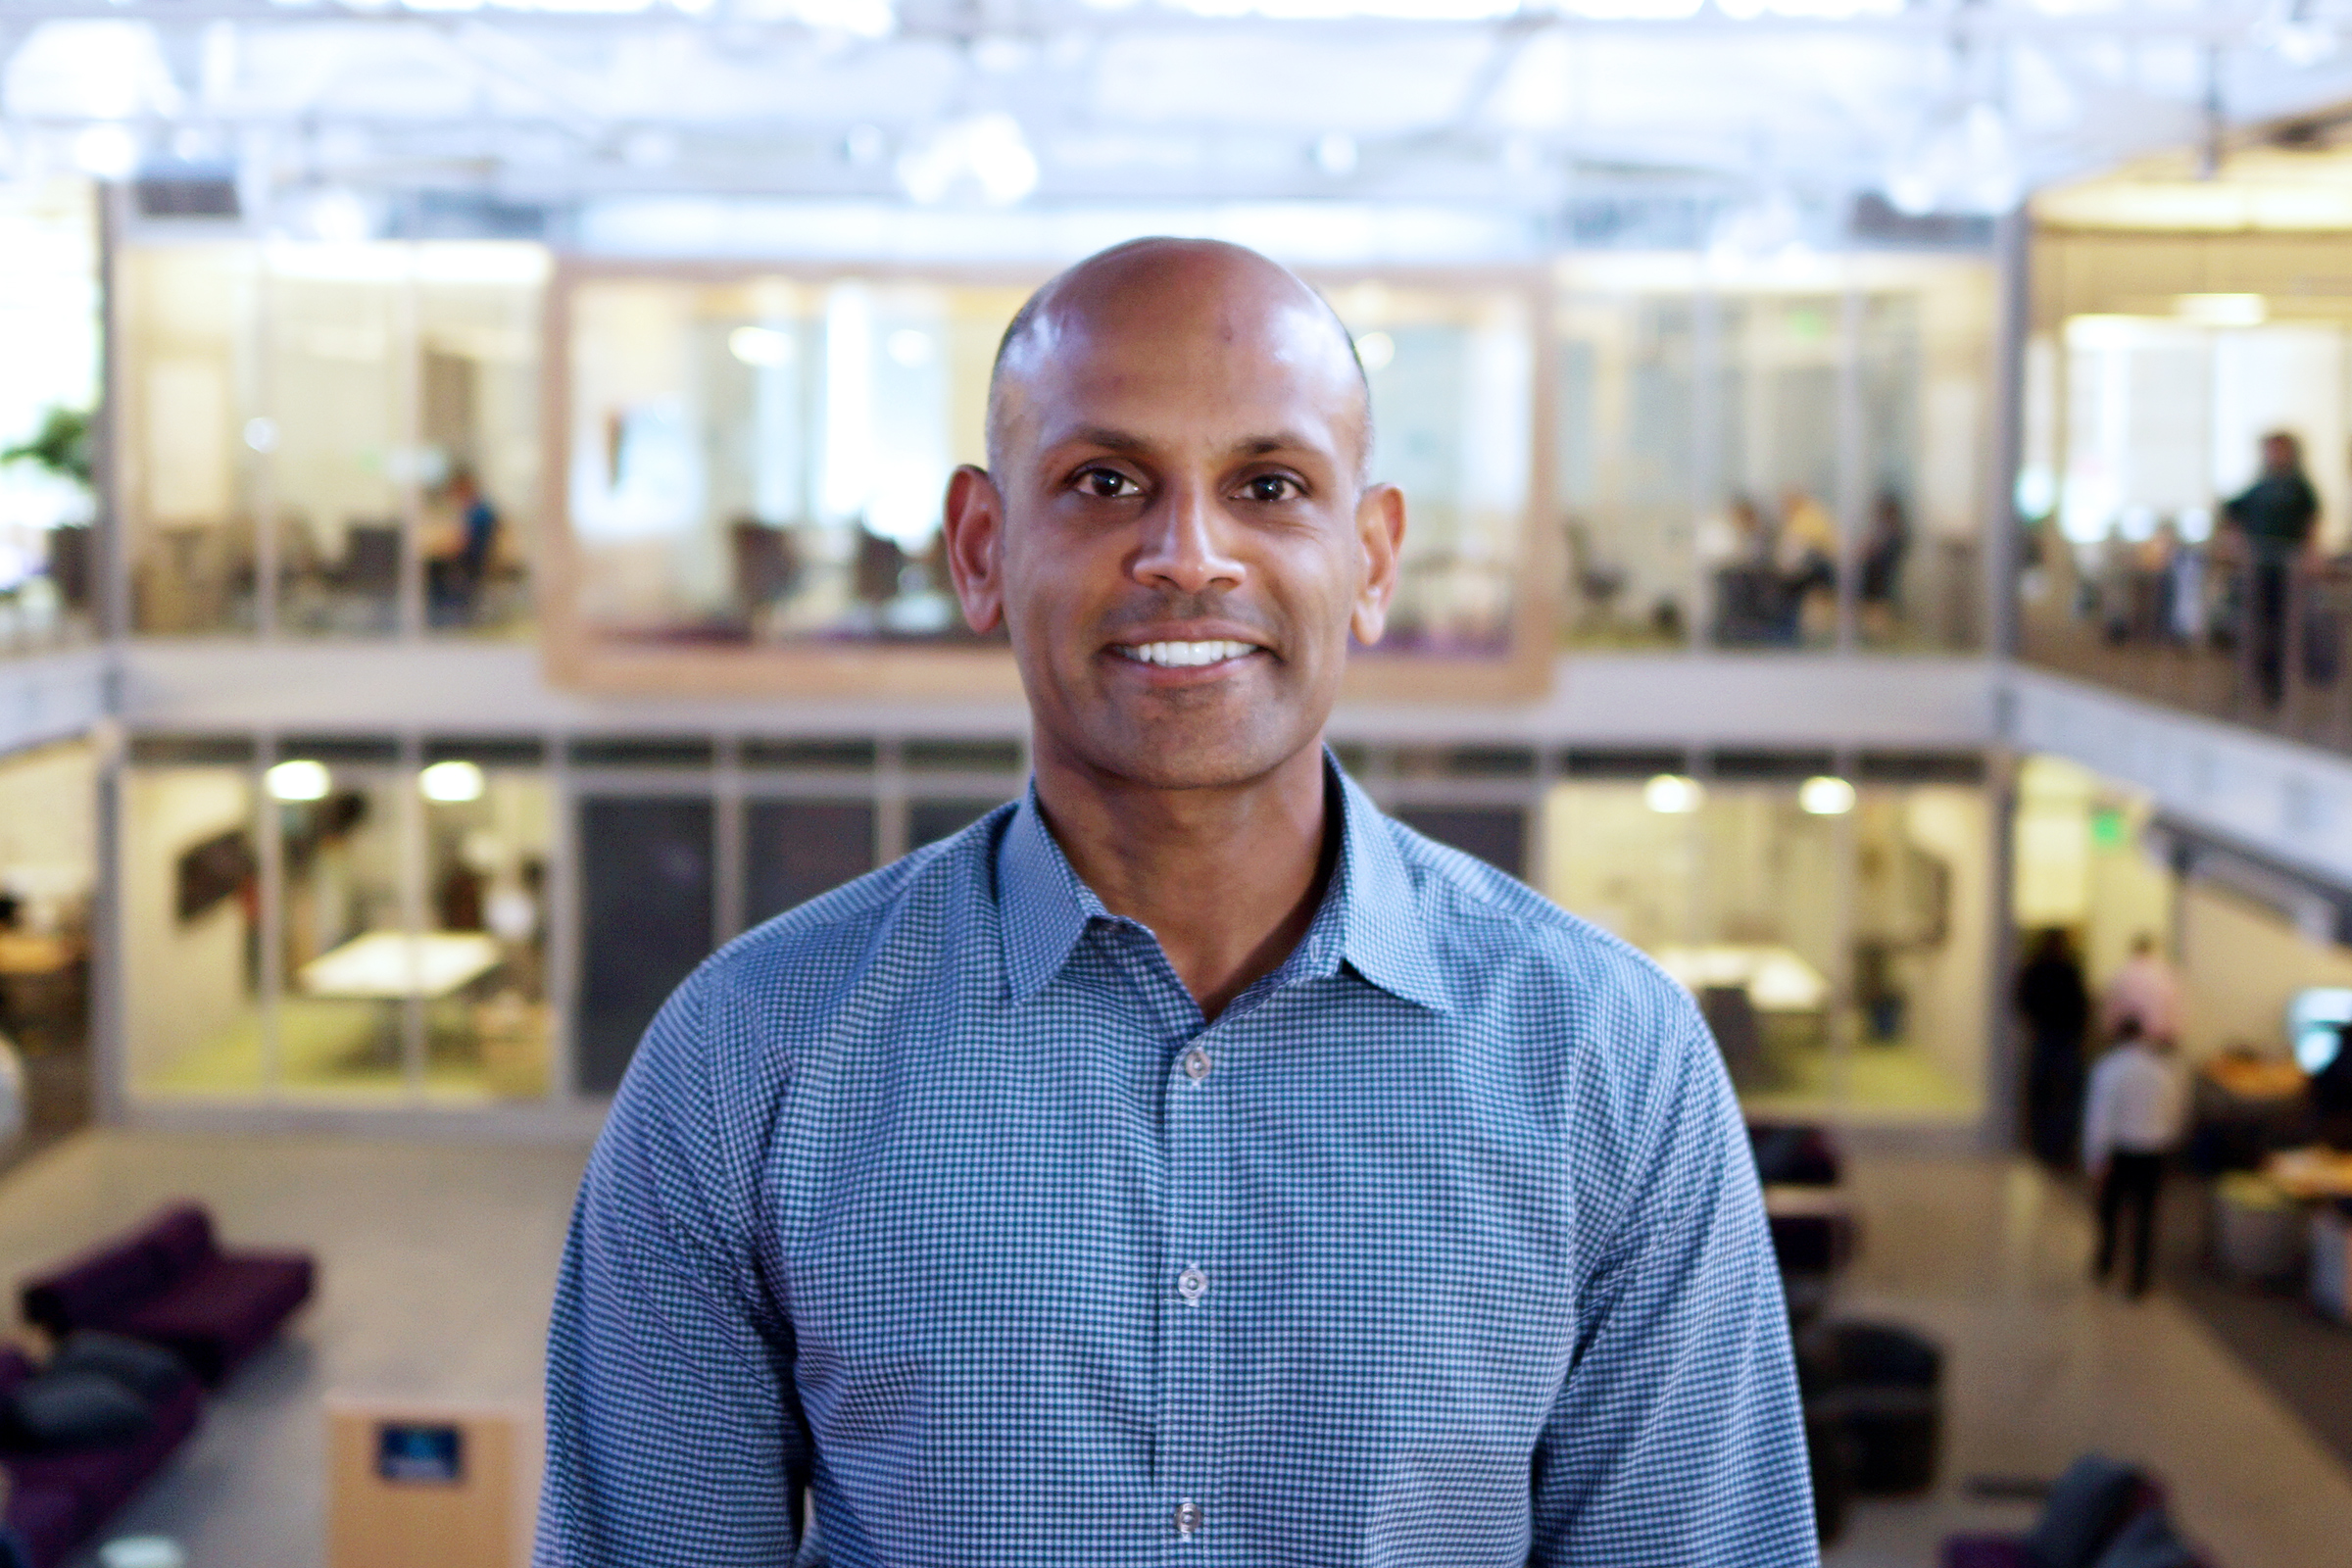 Facebook vice president of infrastructure engineering Jay Parikh. Source: Facebook